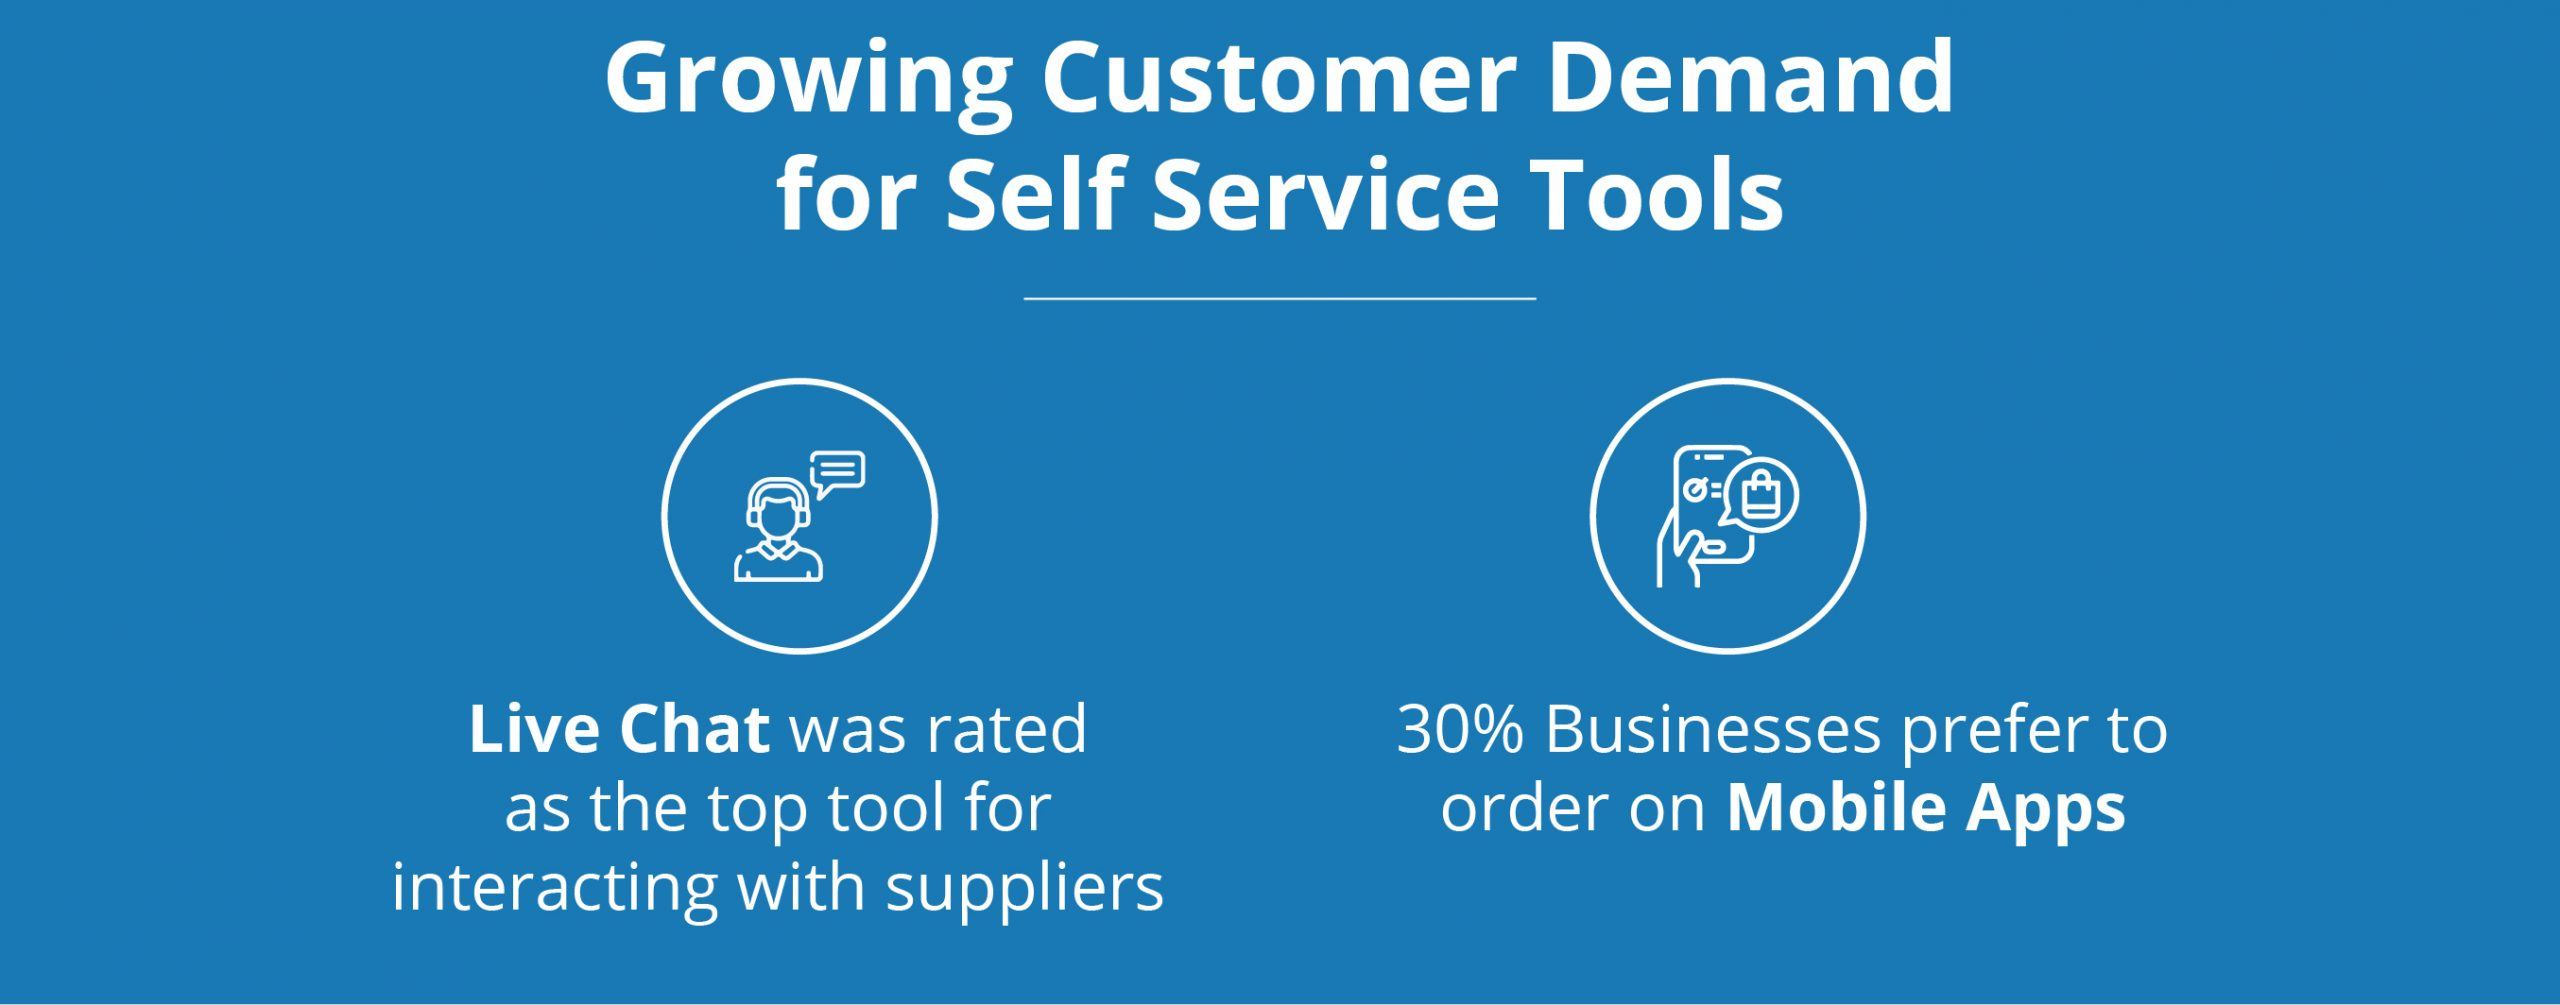 growing customer demand for self service tools